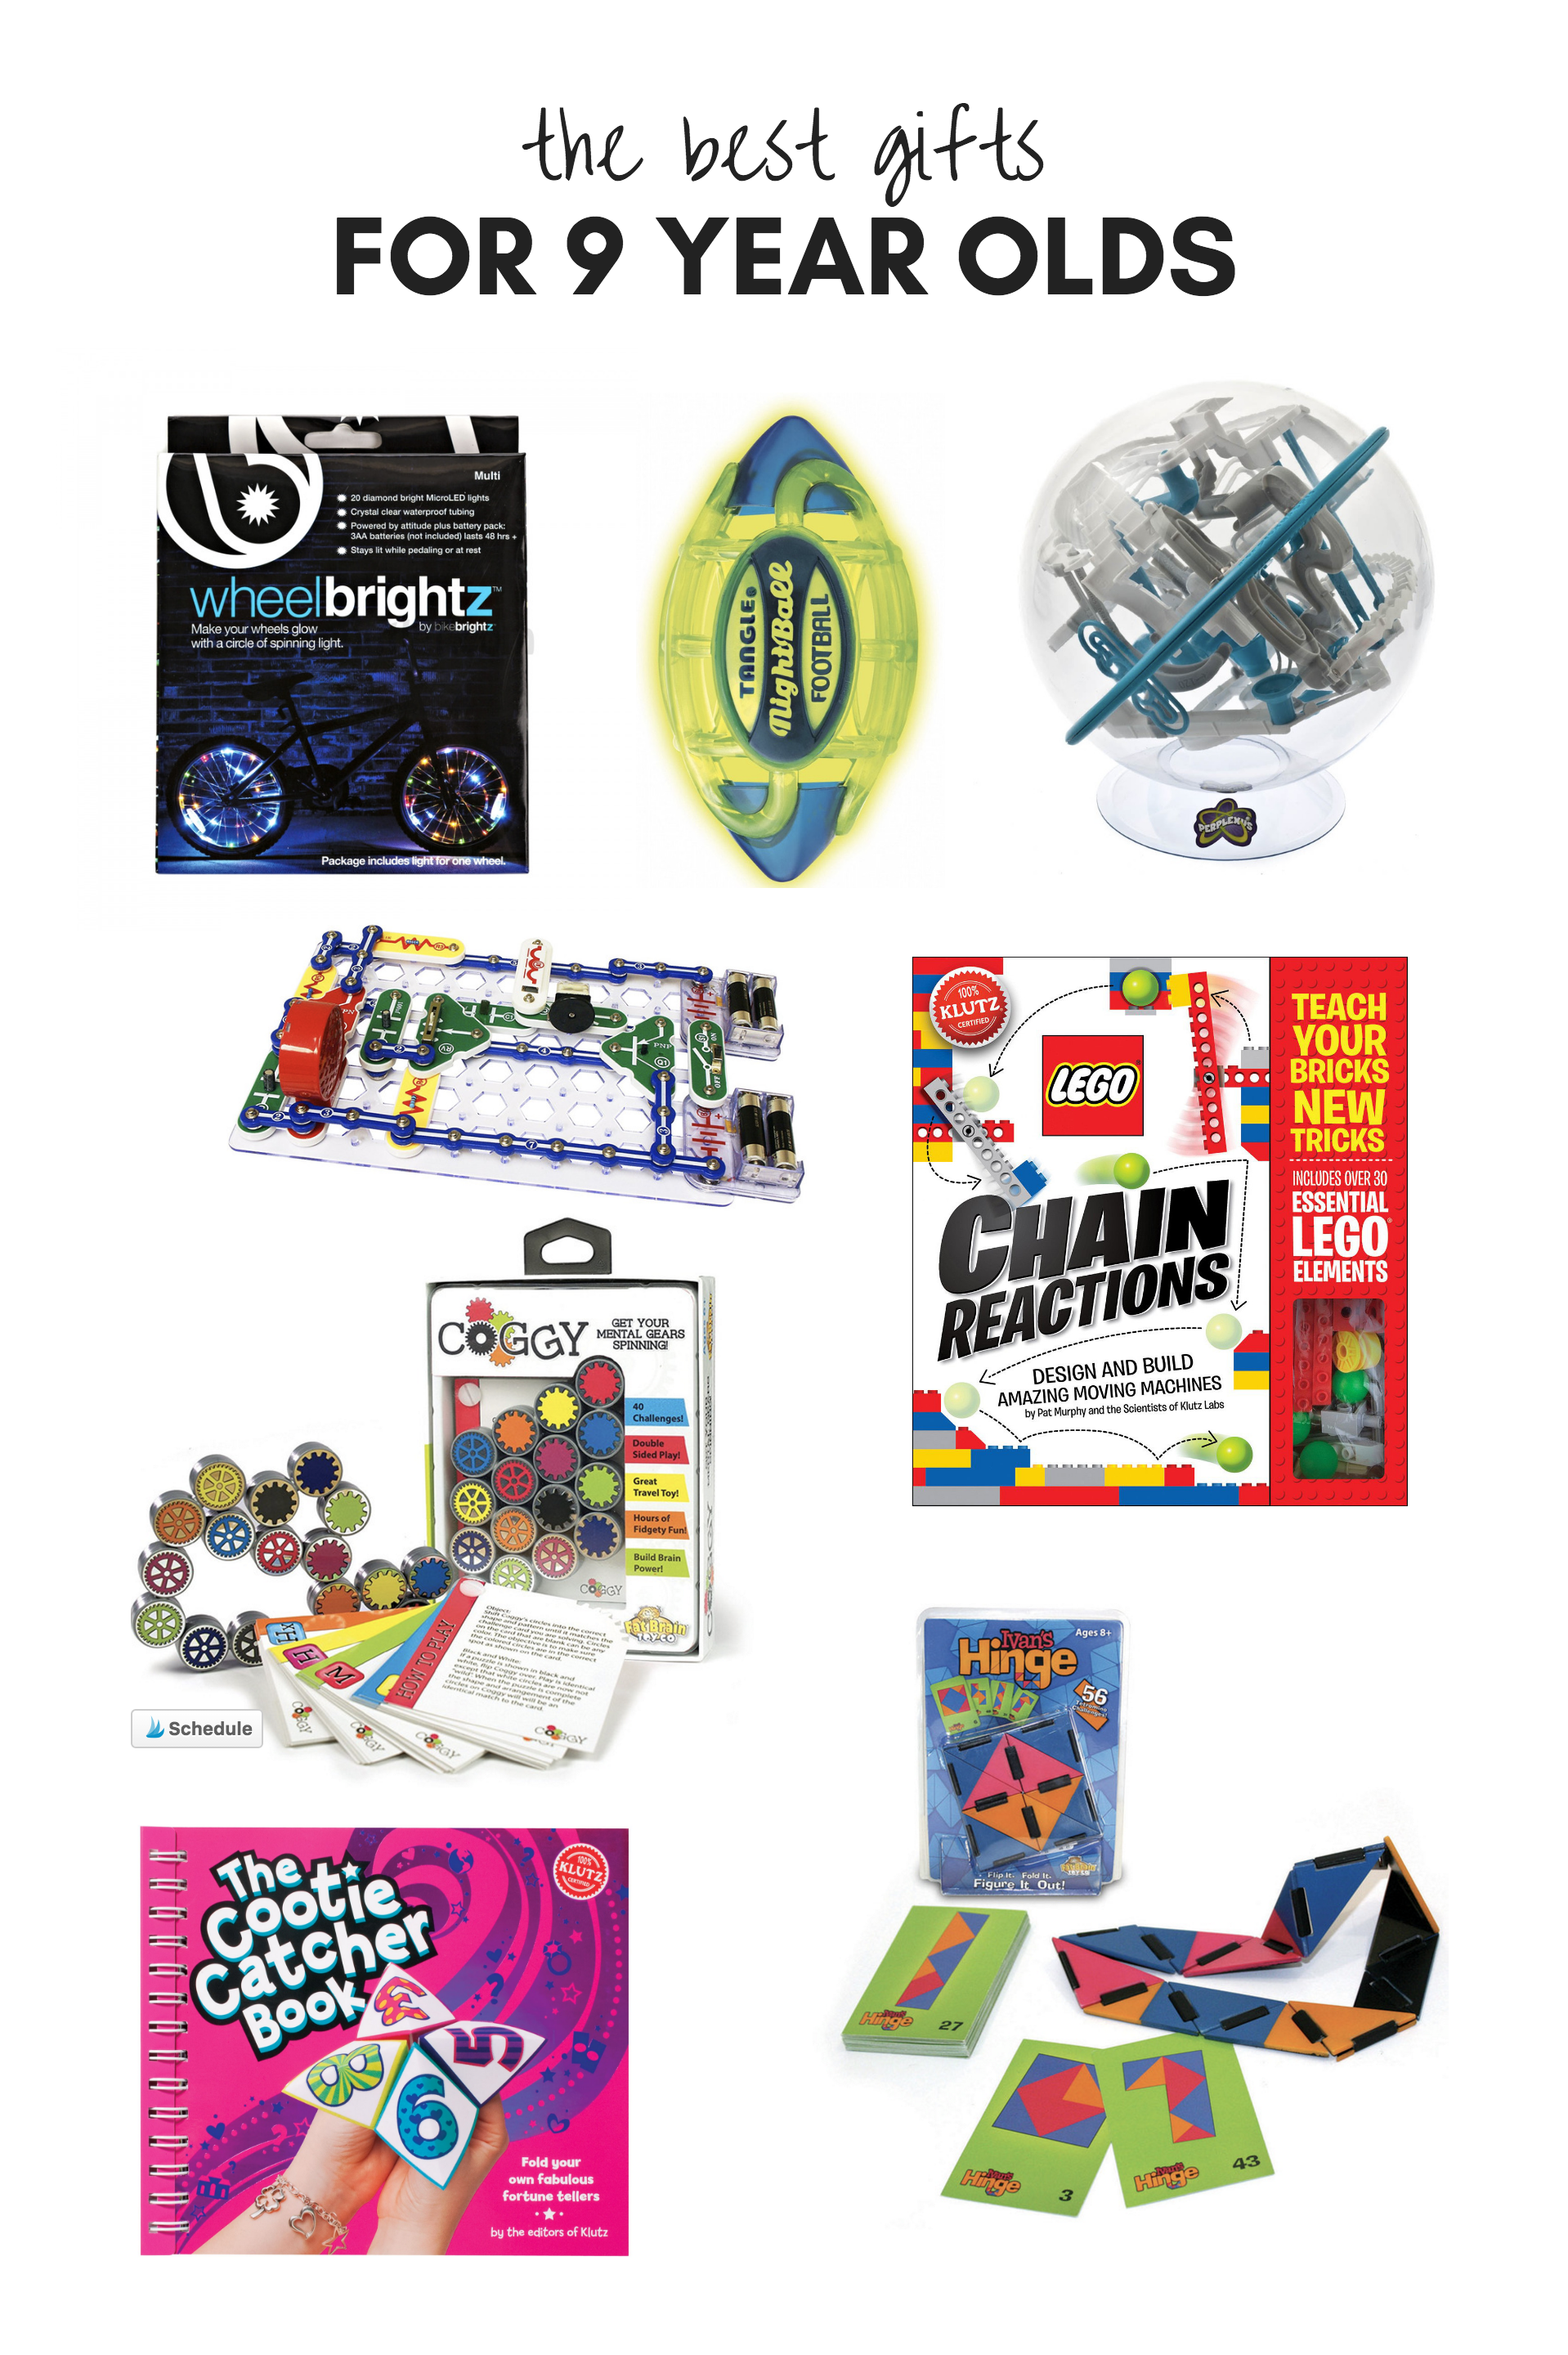 All of our favorite gifts and toys for 9 year olds! These ...